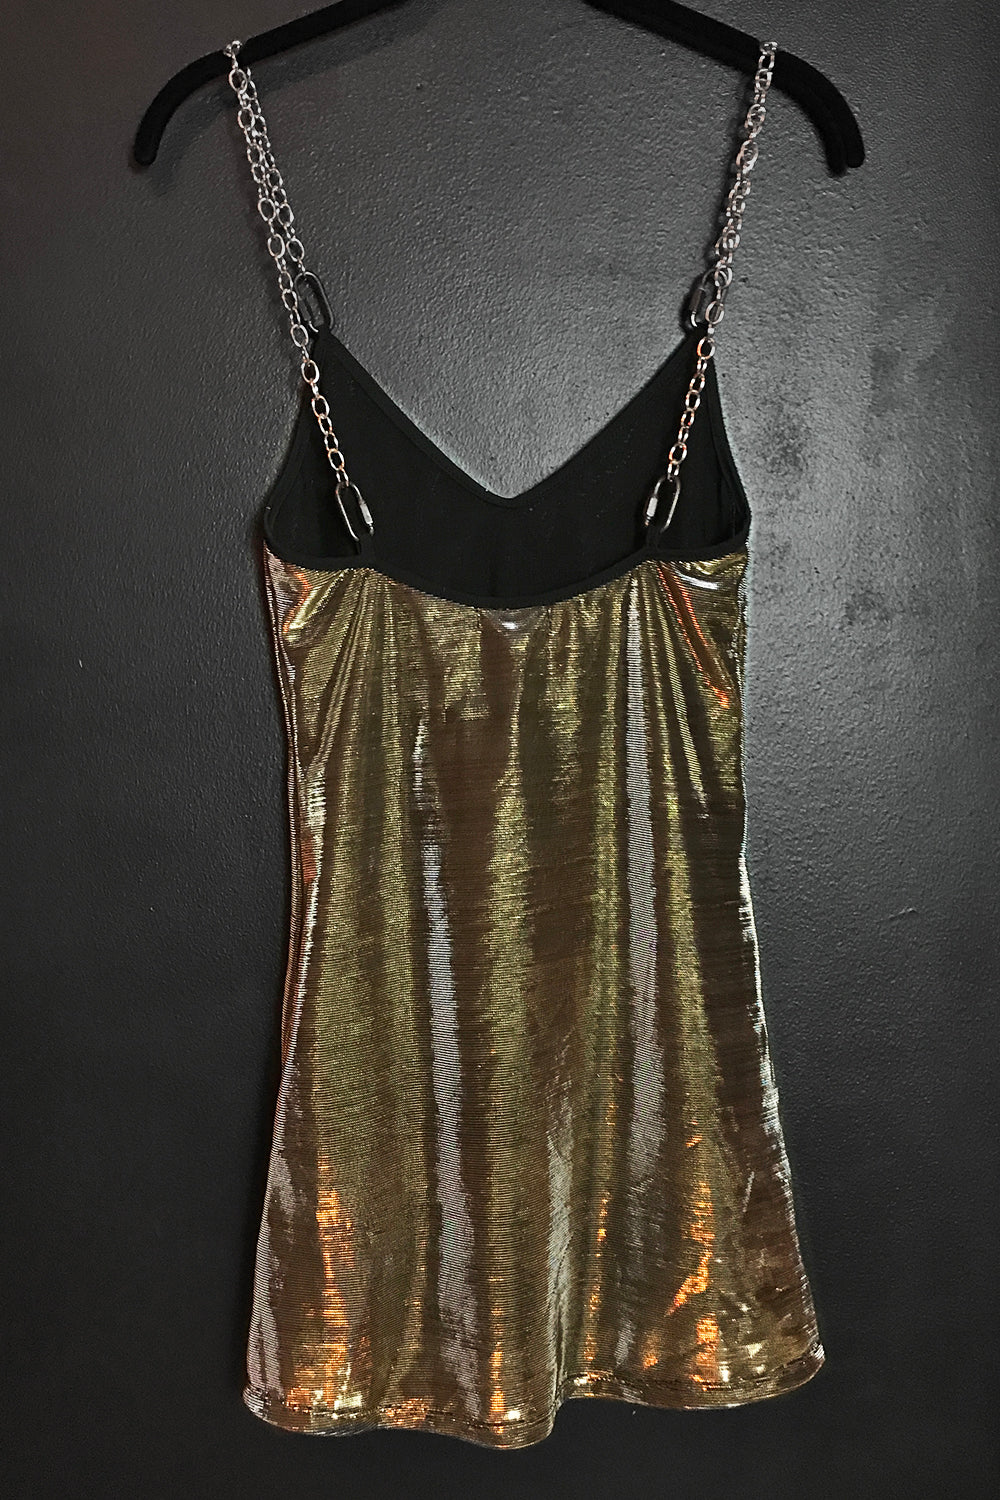 PRE-ORDER The Heavy Metal Chain Dress in Silver-Gold Metallic Mesh